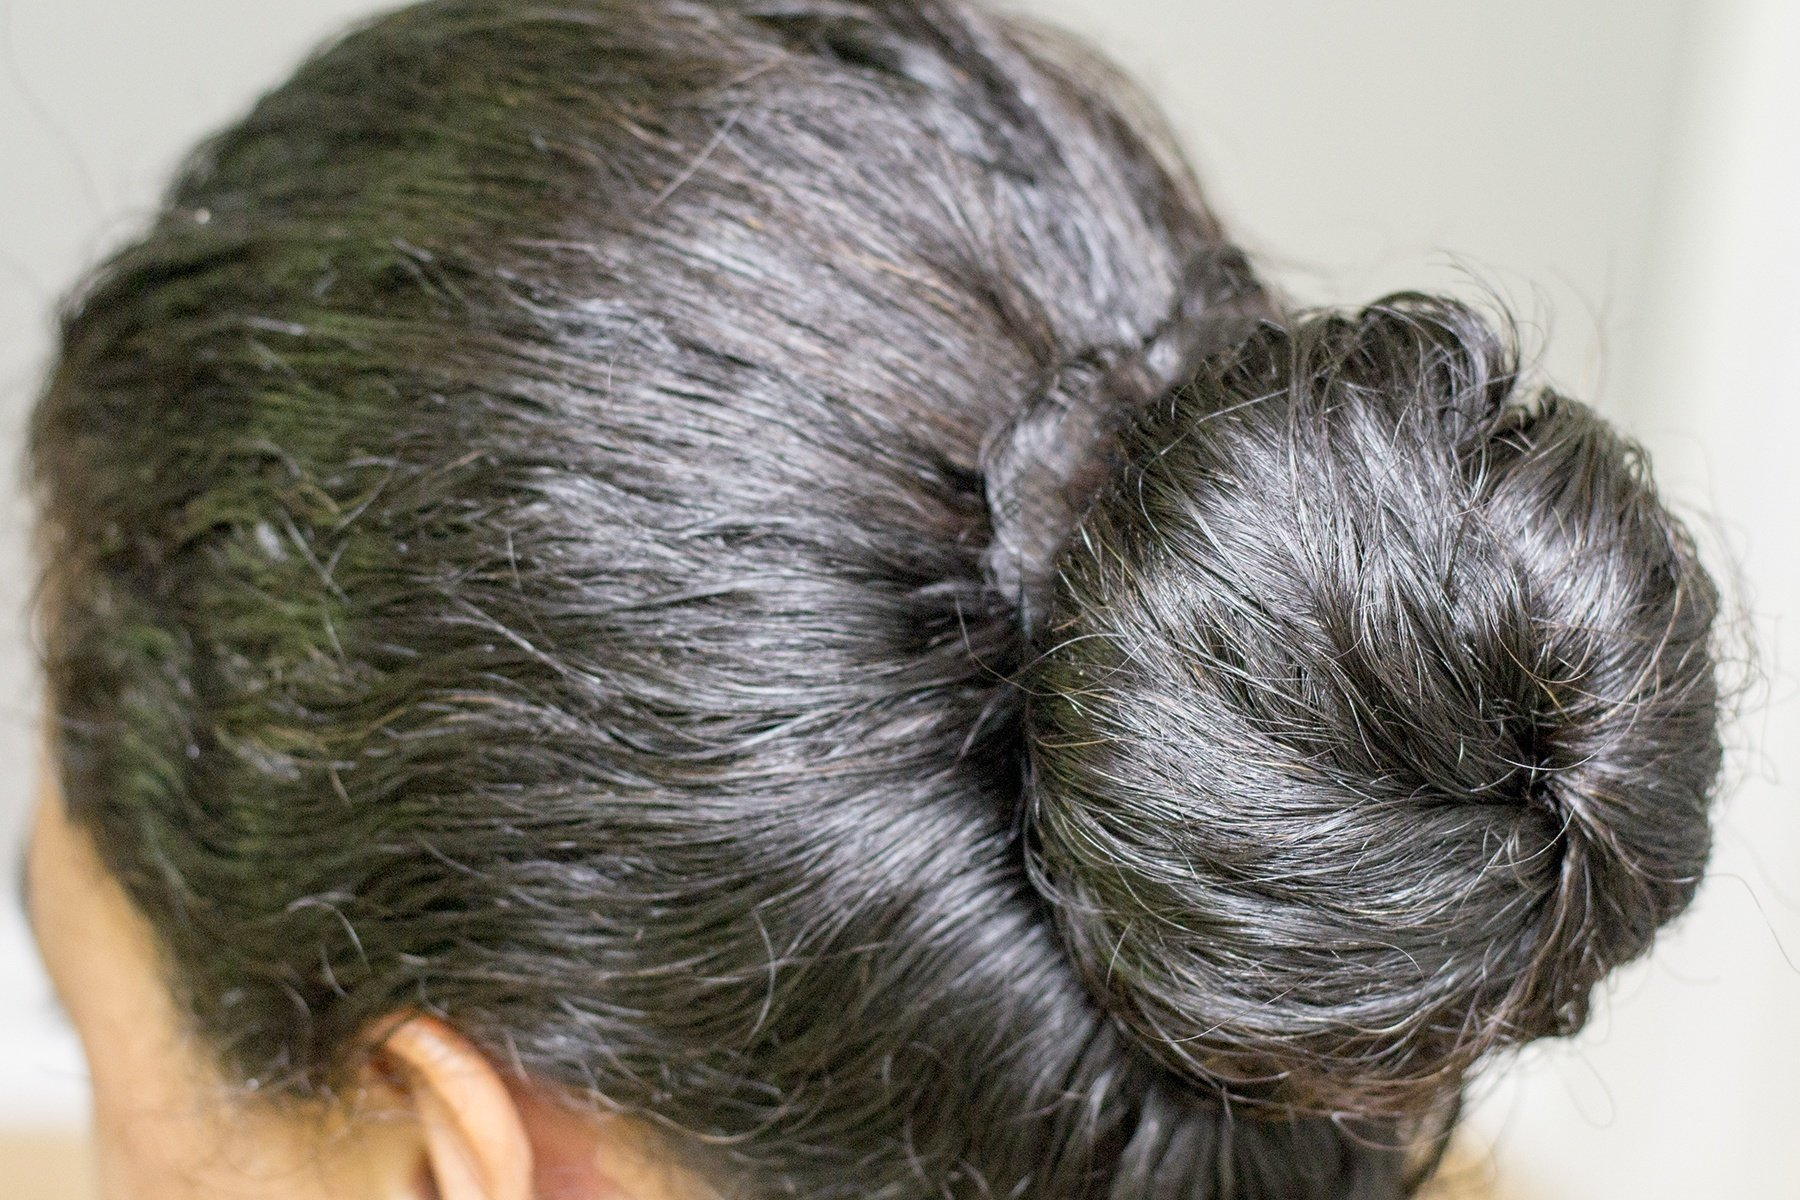 How To Make A Deep Conditioning Coconut Oil Hair Mask